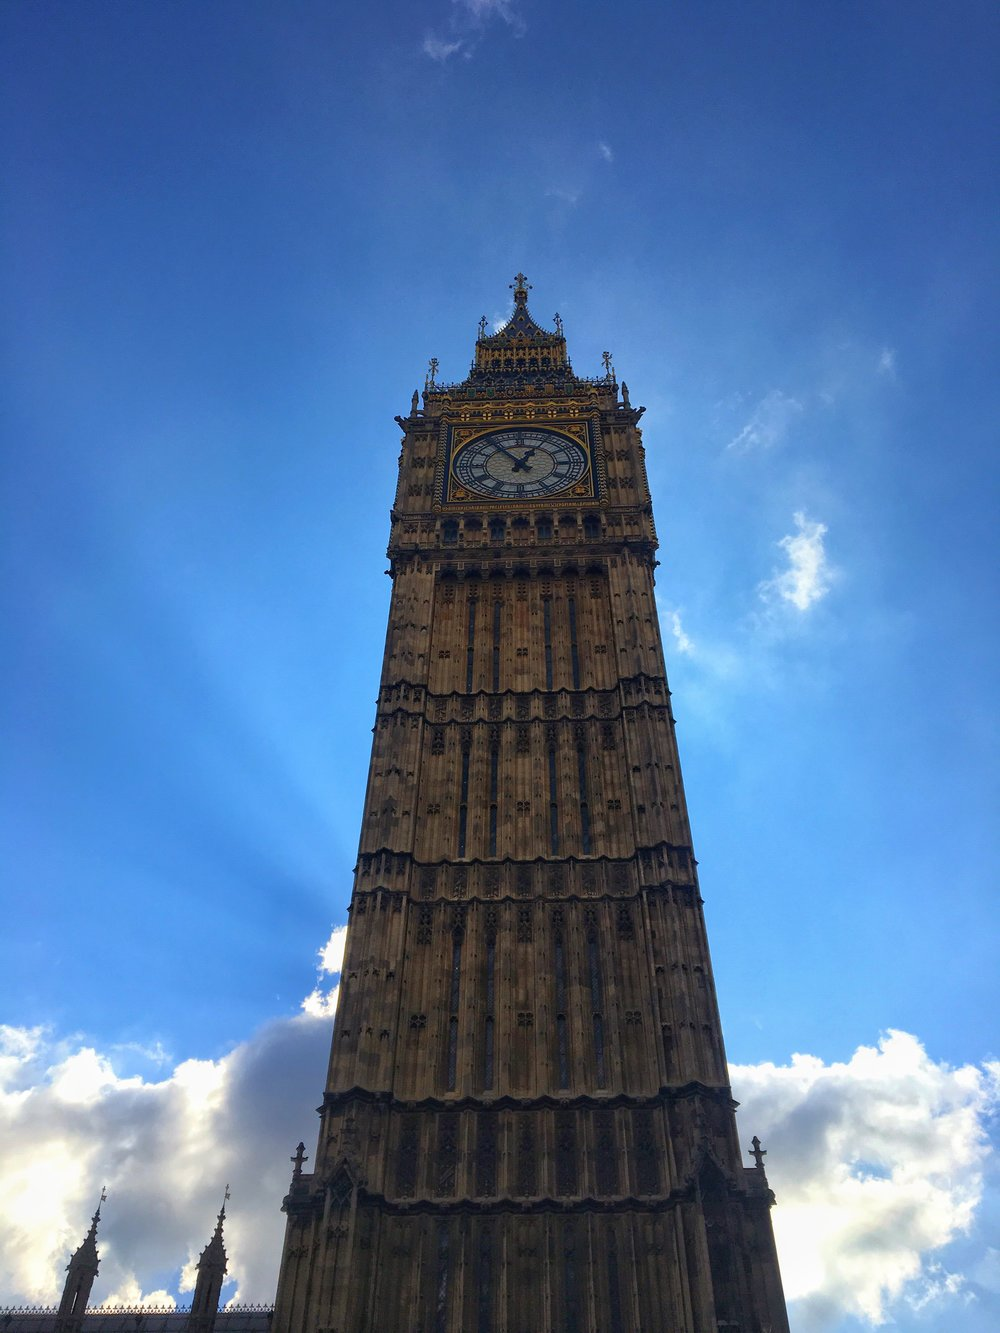 Big Ben - No Italian leather here